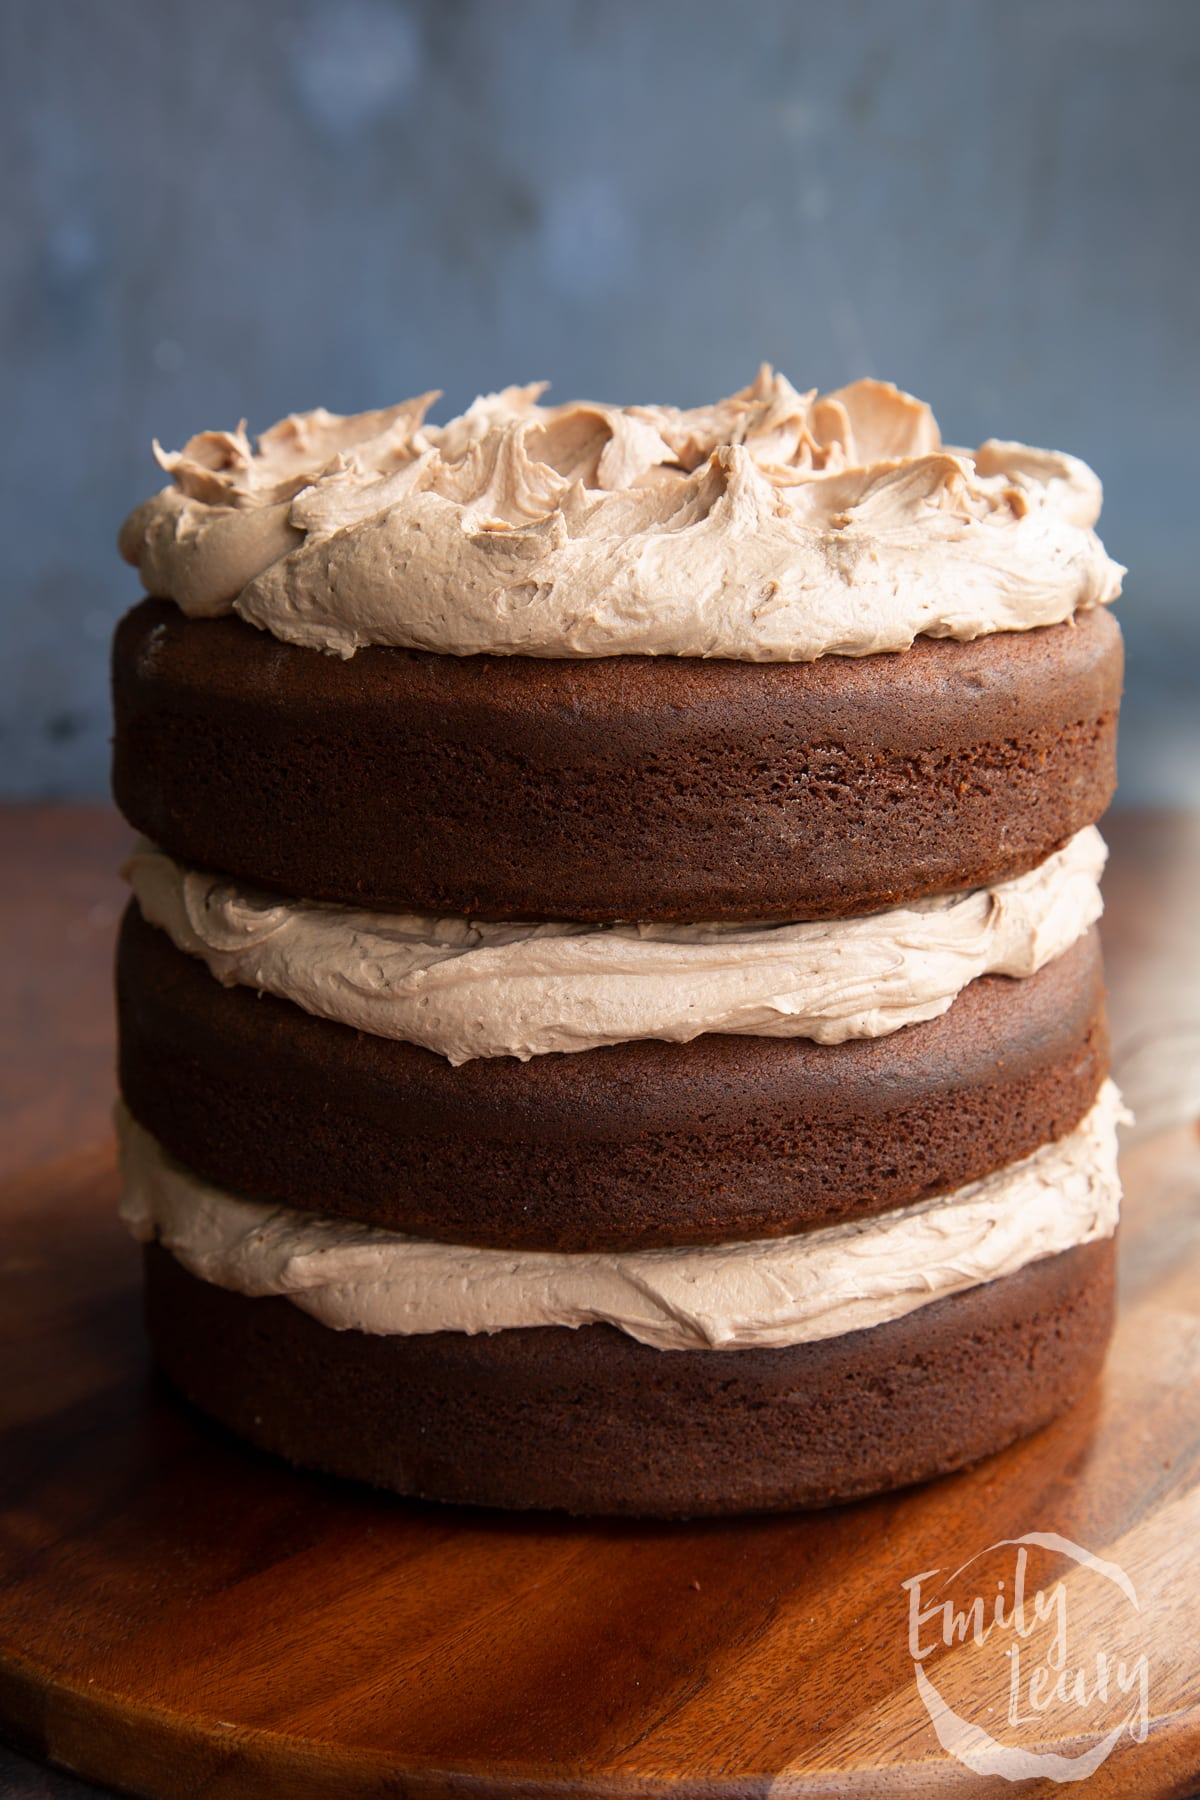 Three tier chocolate Baileys cake, sandwiched and topped with Baileys buttercream frosting.